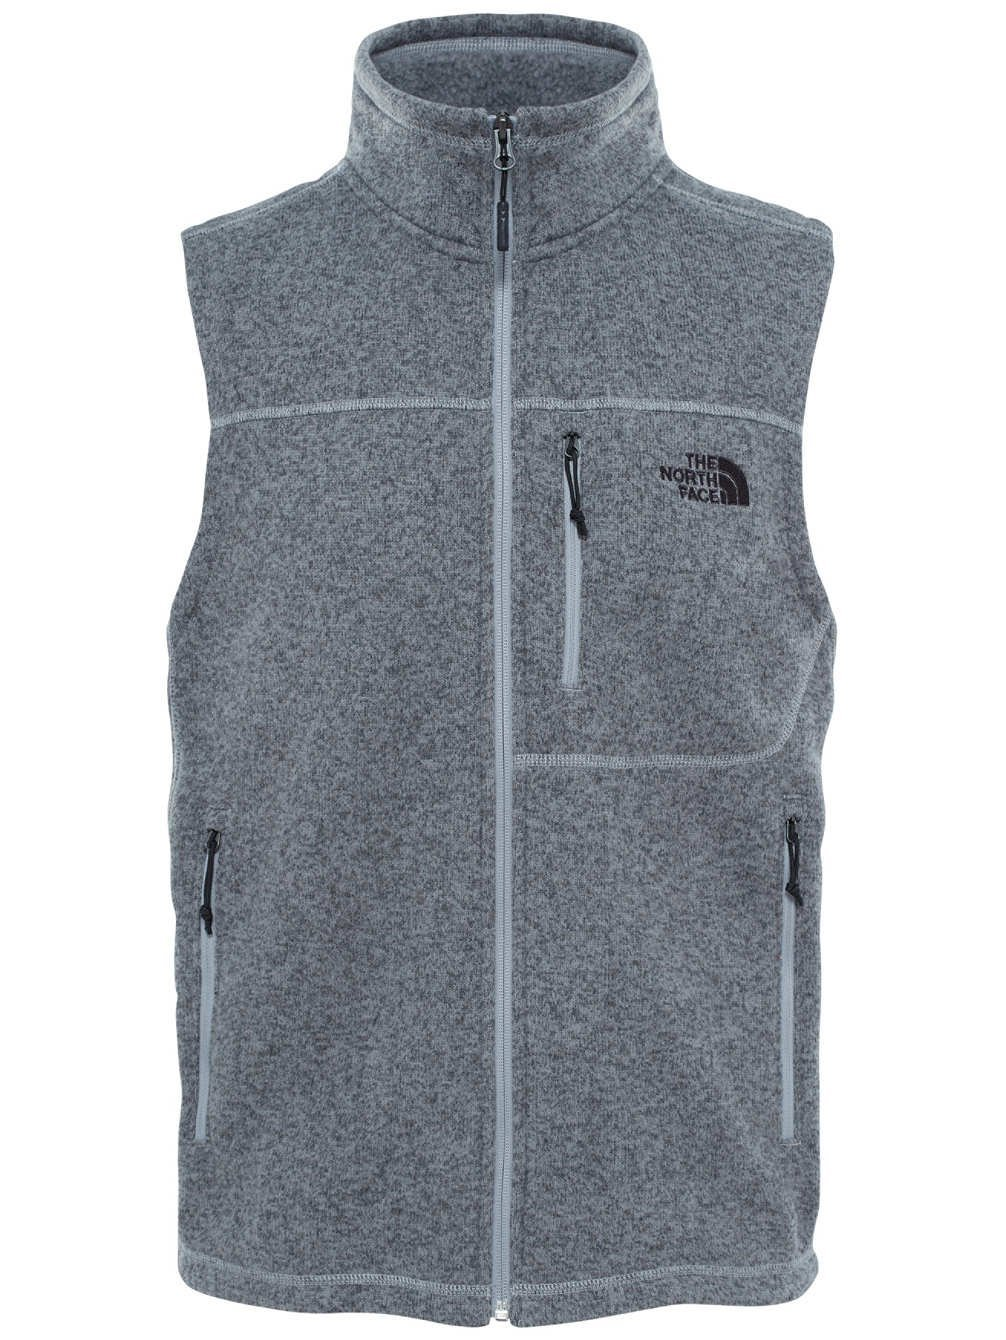 The North Face Men's Gordon Lyons Vest - TNF Medium Grey Heather - XXL by The North Face